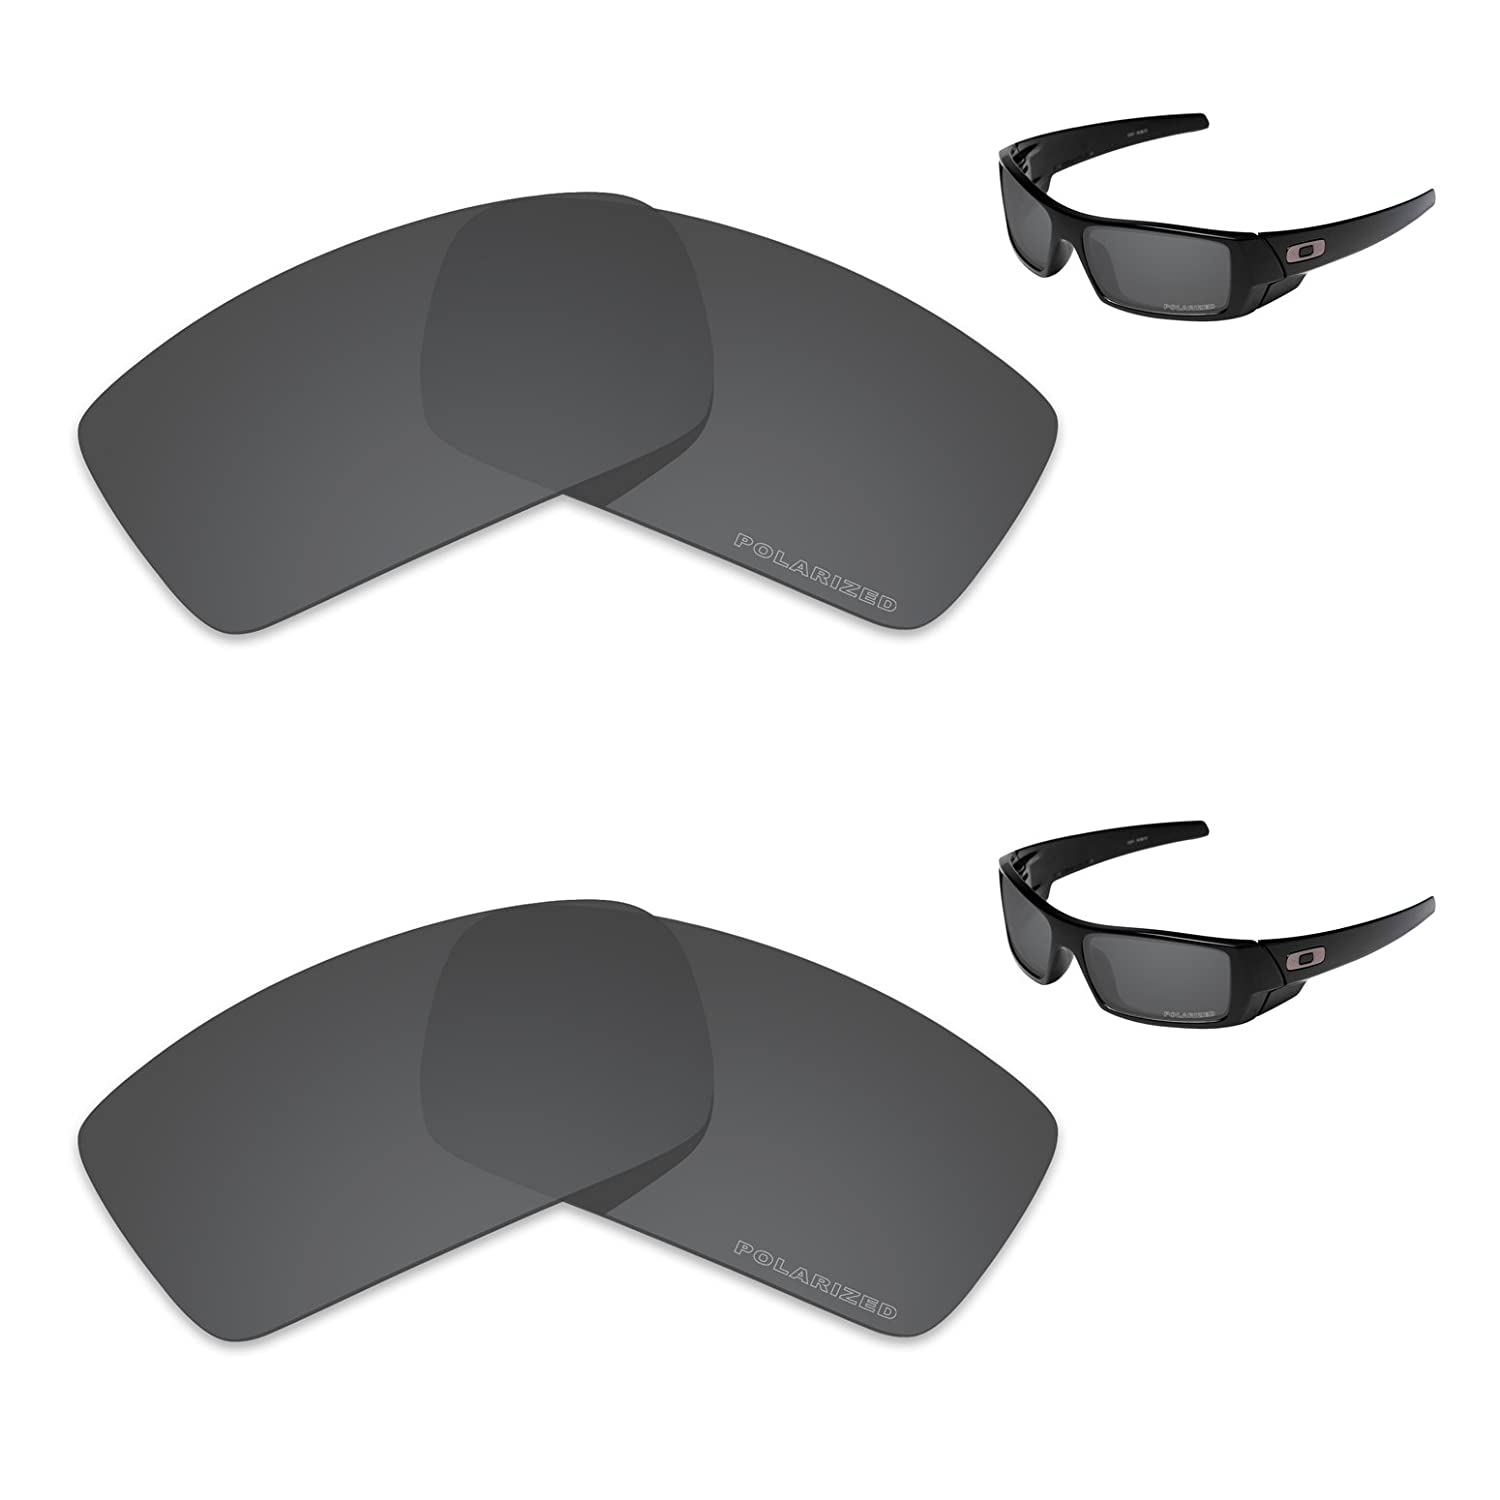 246edbf9cf Amazon.com  Tintart Performance Replacement Lenses for Oakley Gascan  Polarized Etched - Value Pack  Clothing